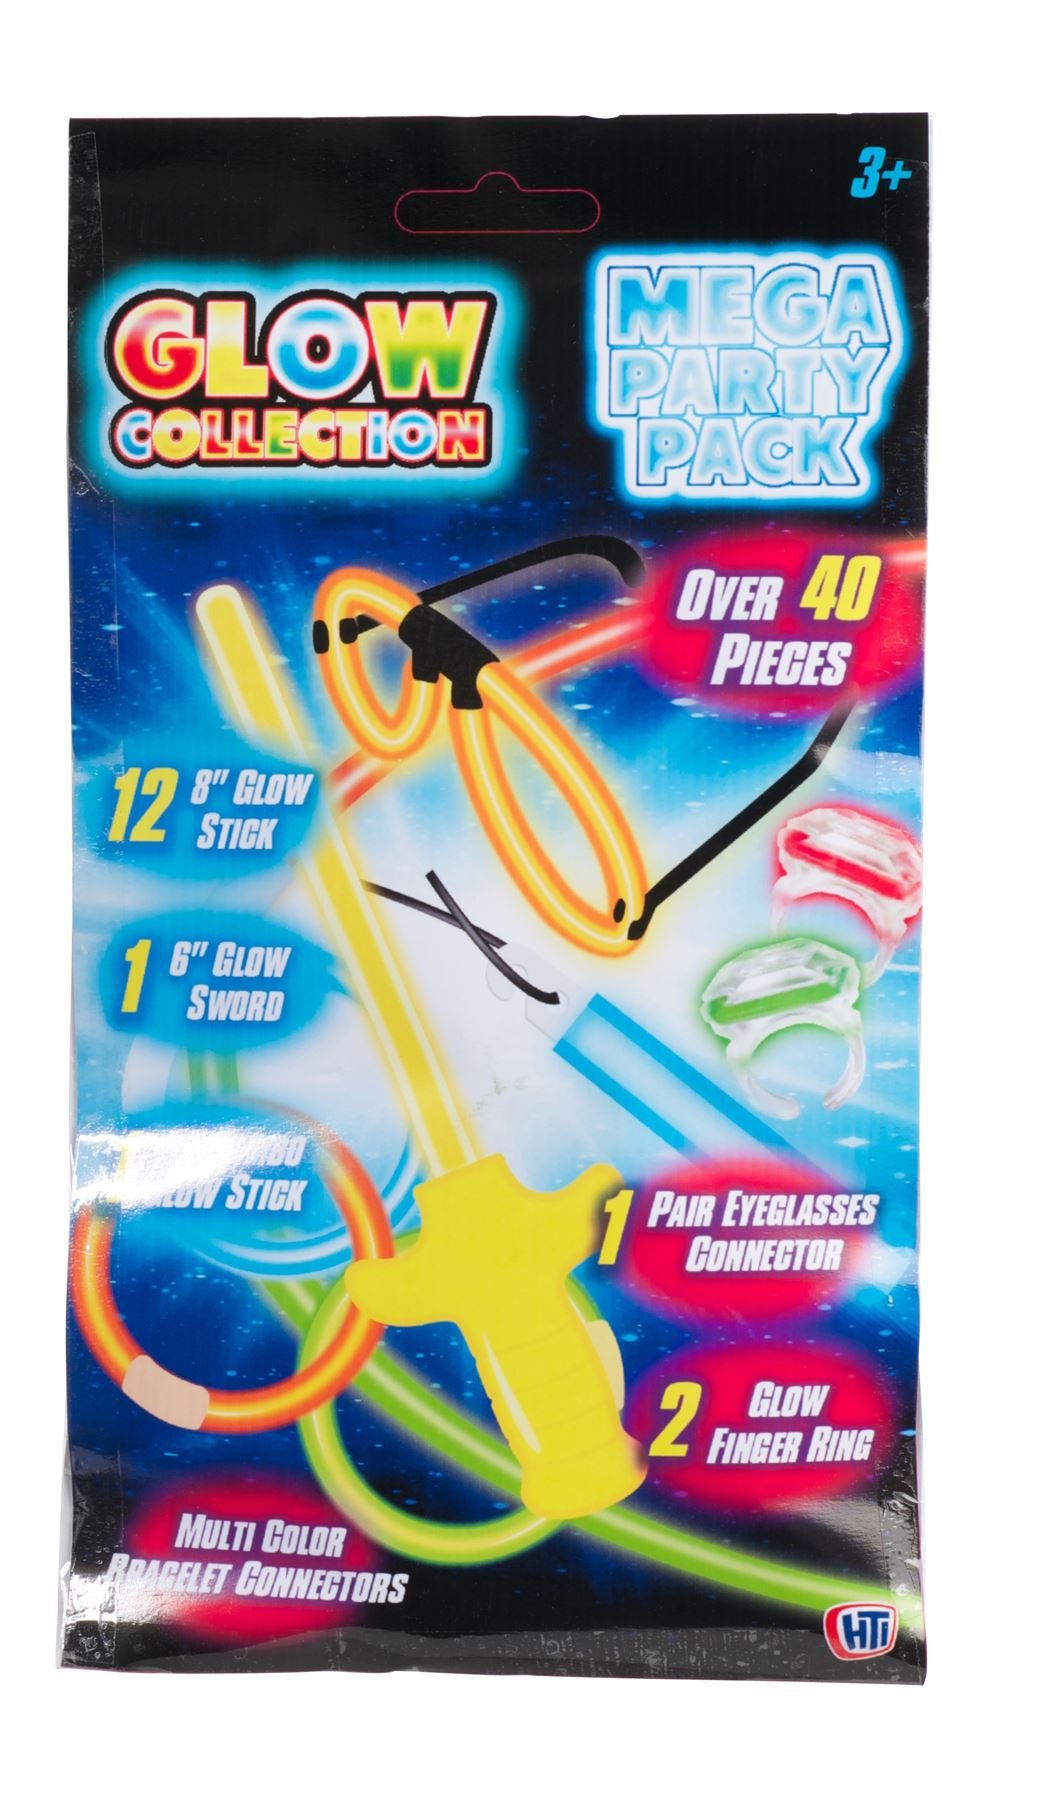 Glow Collection Mega Party Pack - 6 Glow Sword